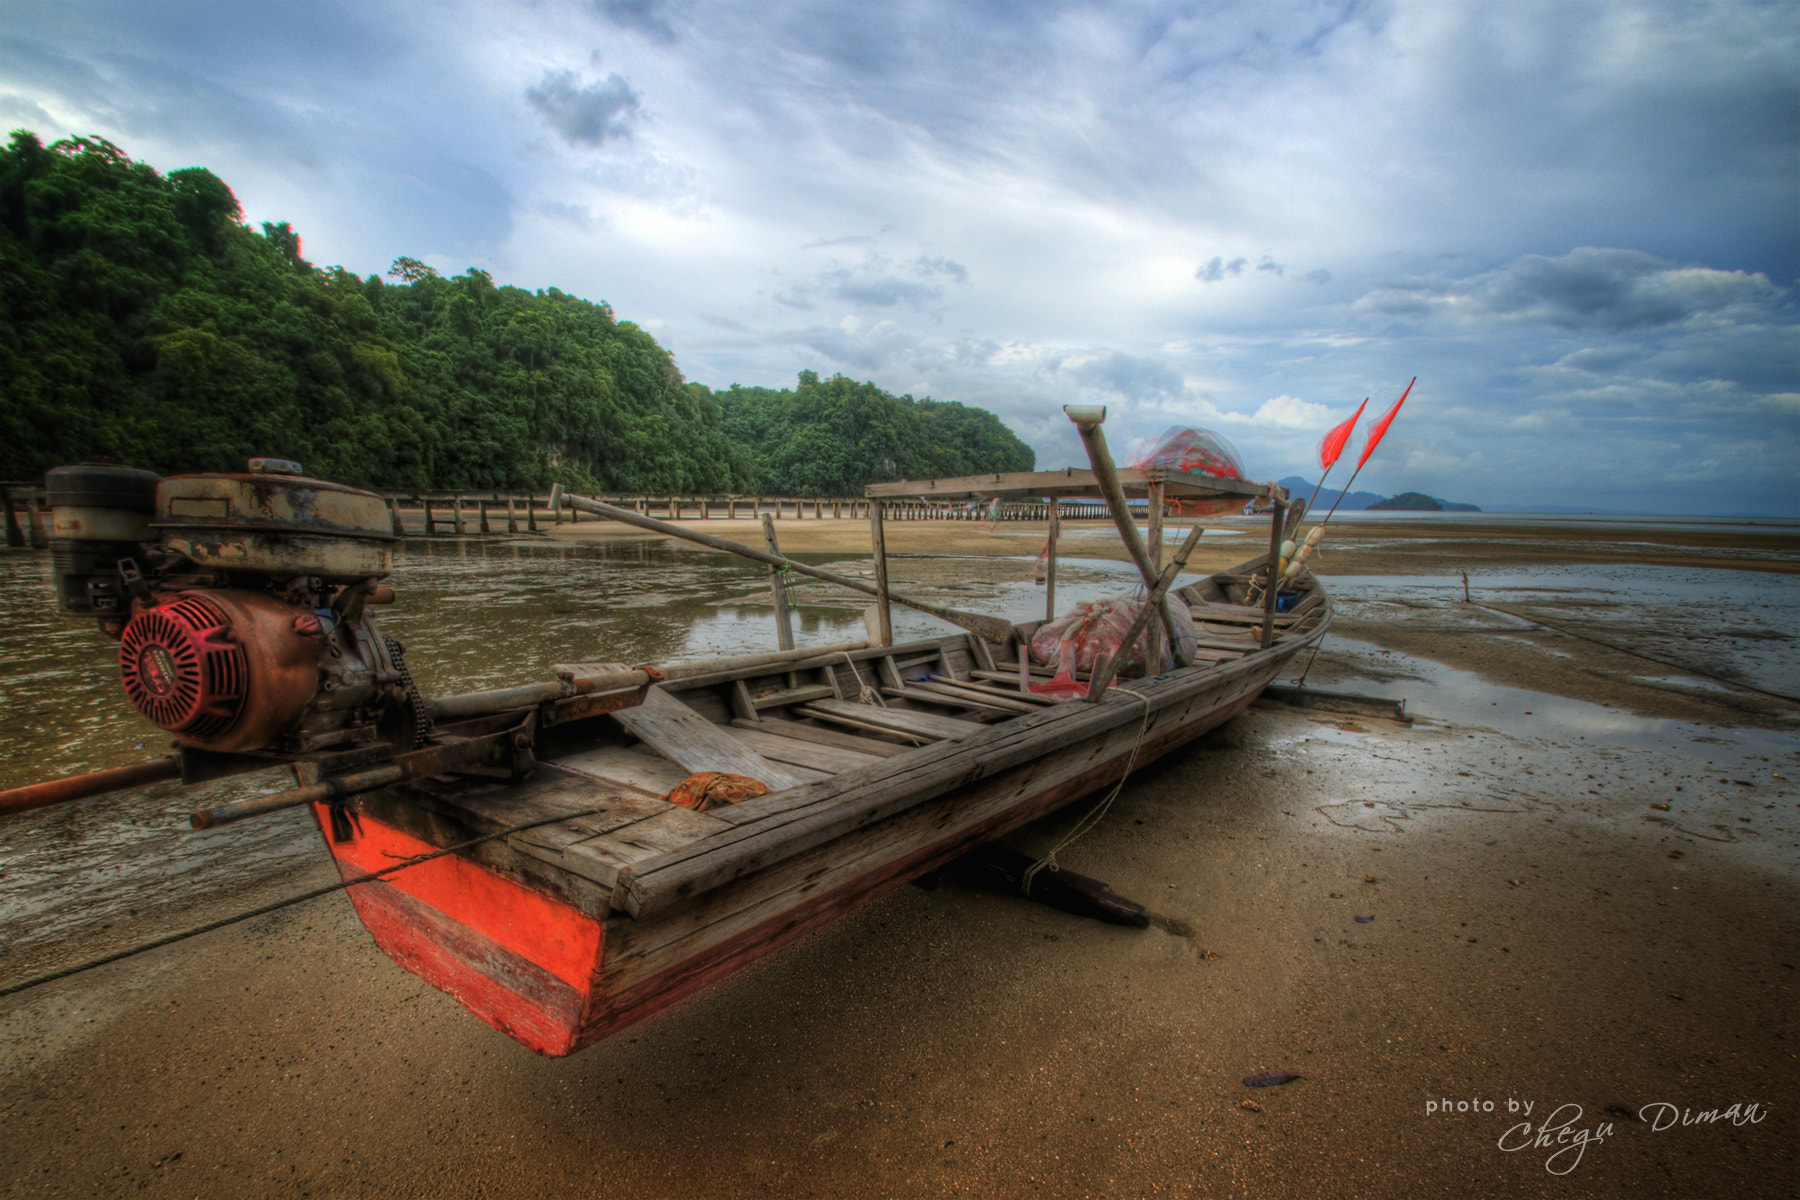 Photograph boat by chegu diman on 500px